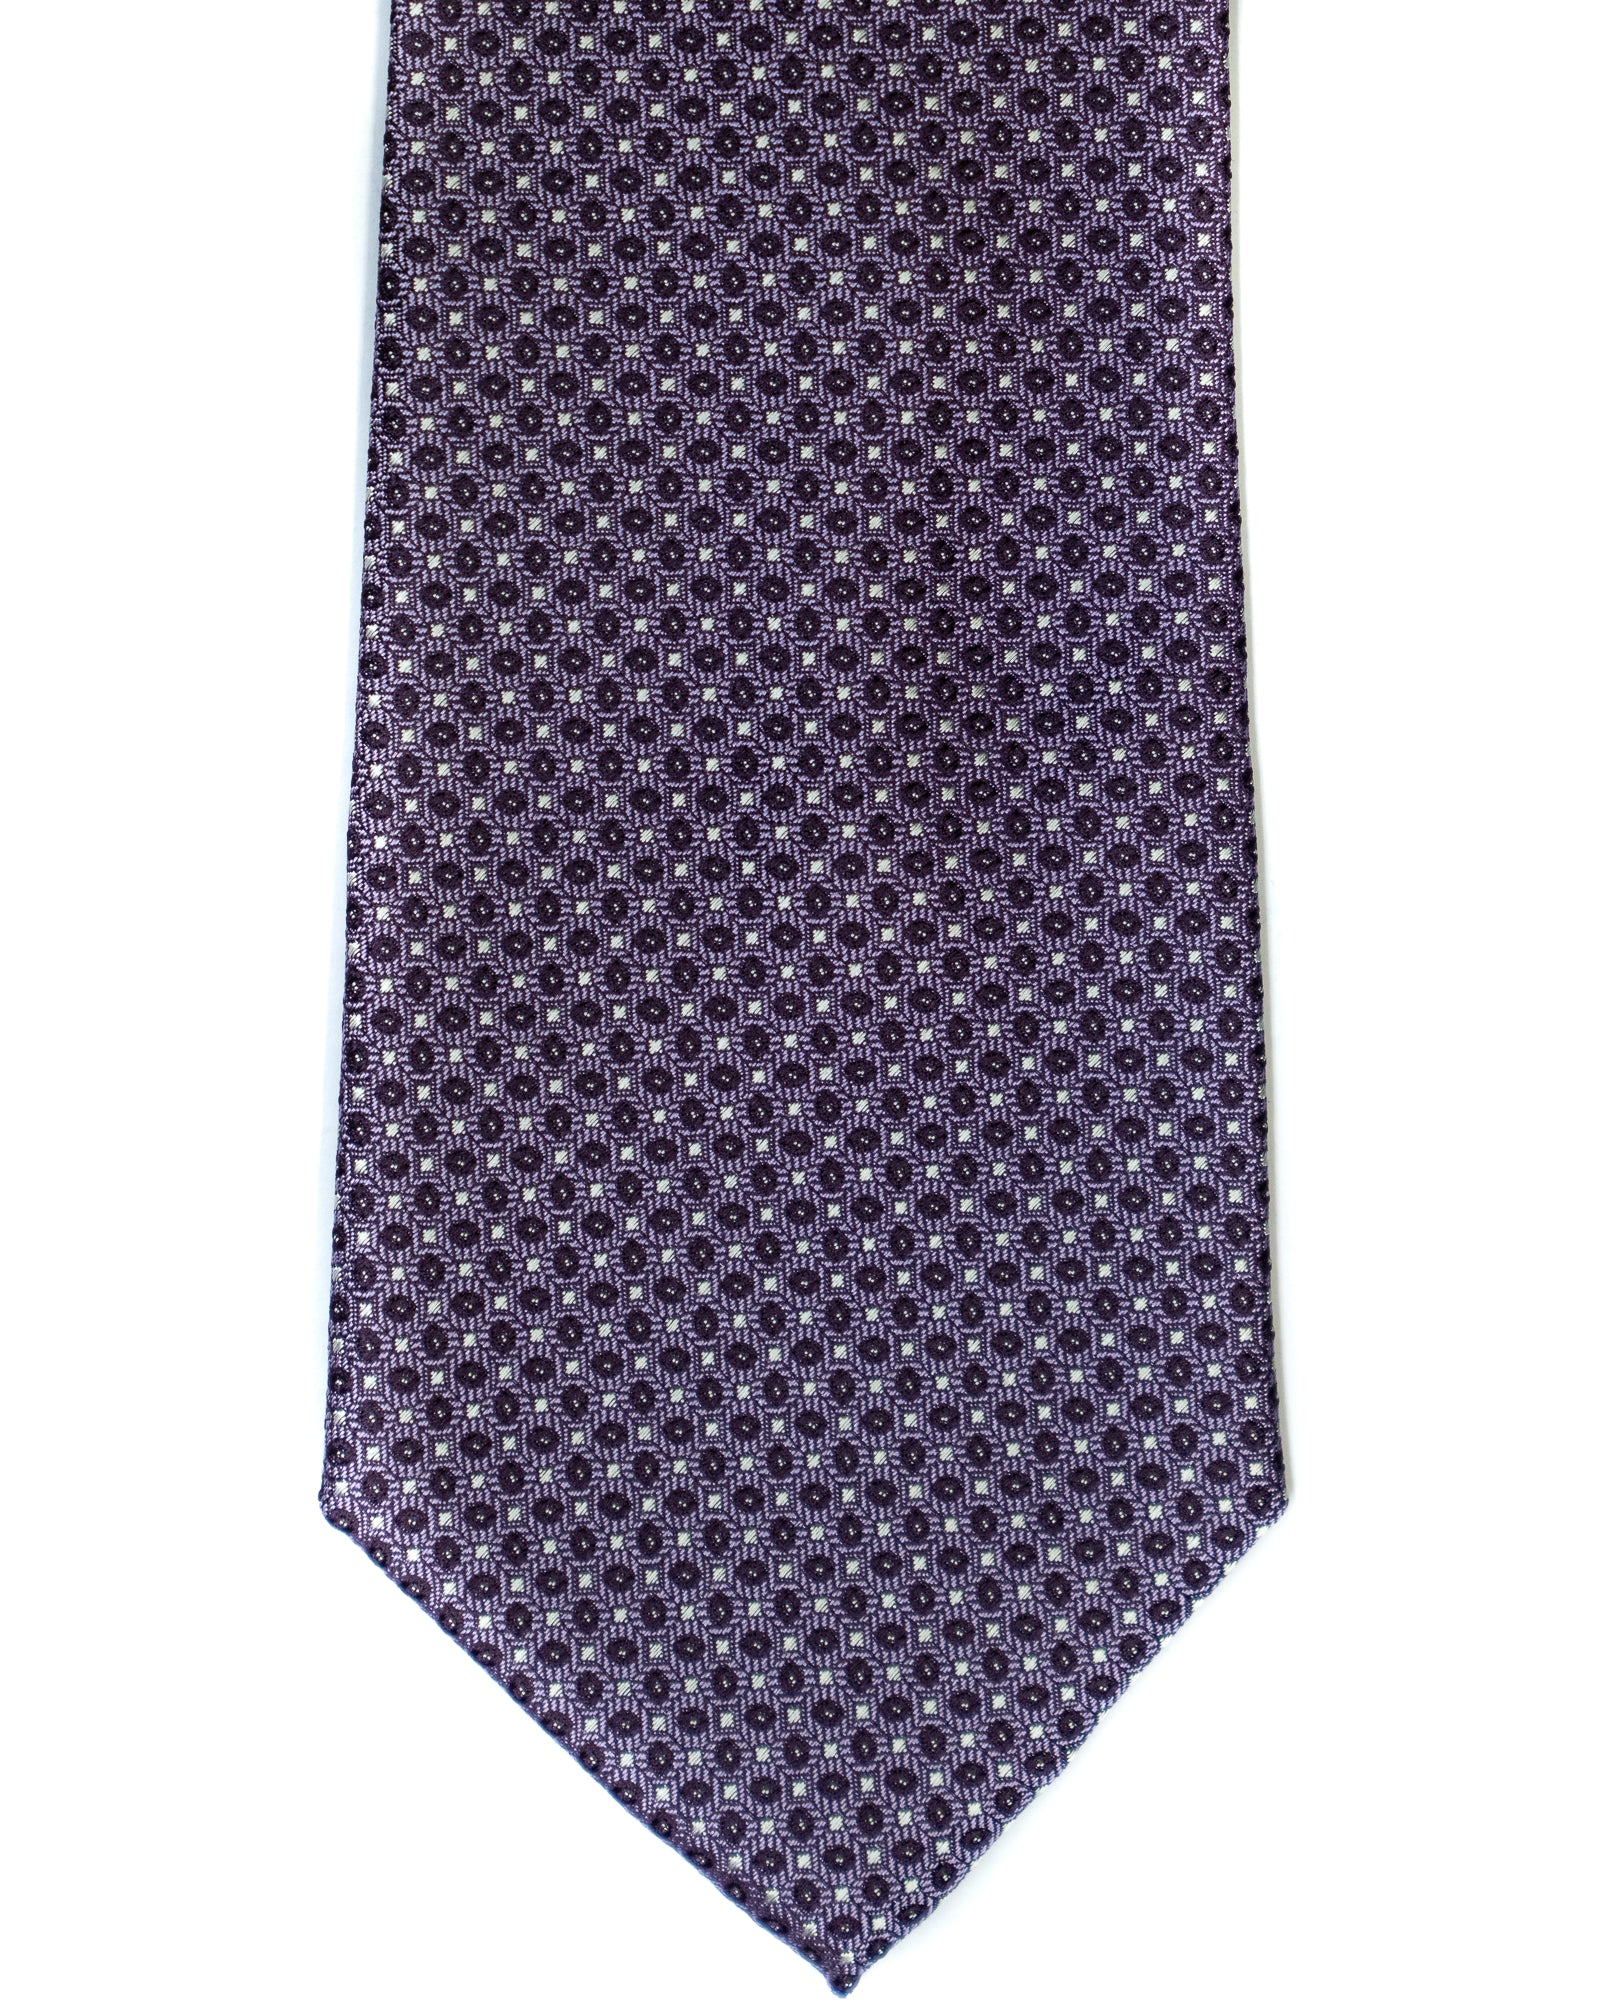 Silk Tie In Lavender Neat Foulard Print - Rainwater's Men's Clothing and Tuxedo Rental